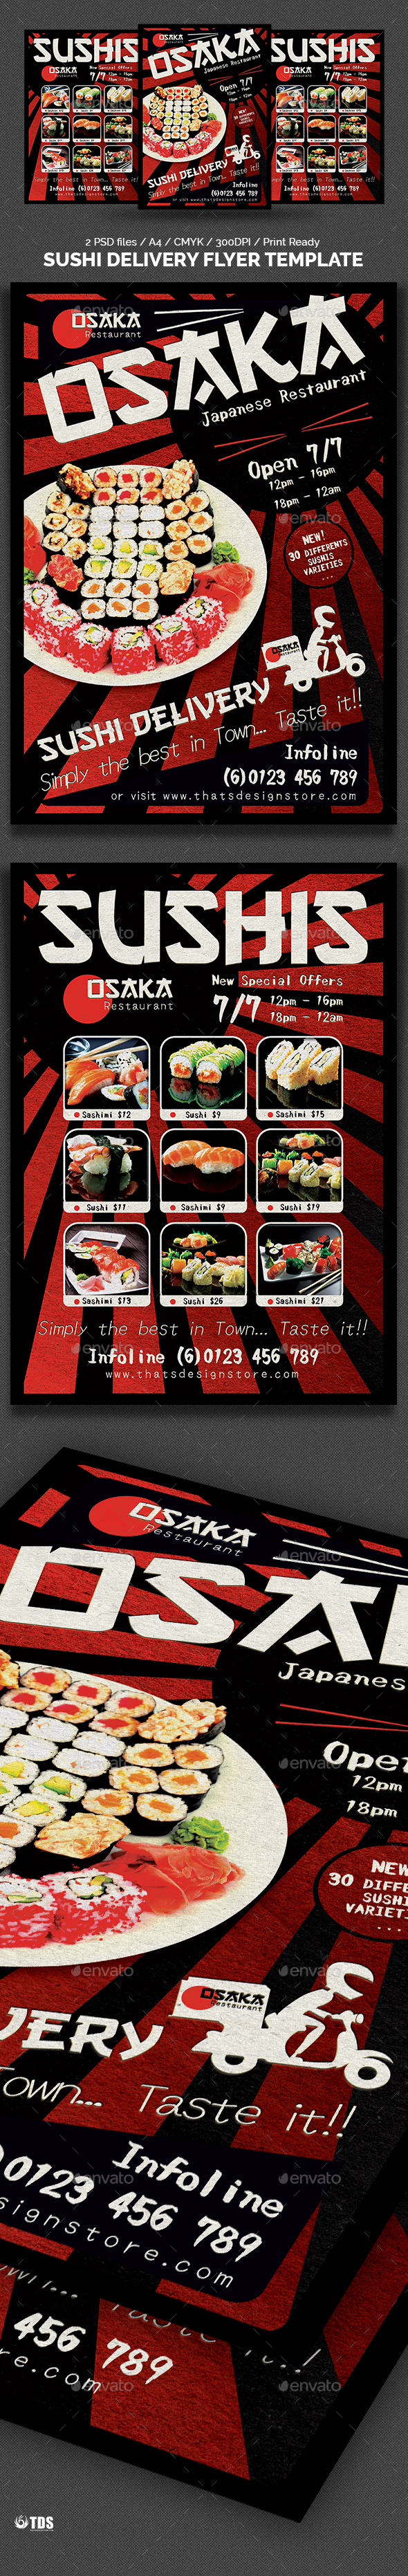 Sushi Delivery Flyer Template (2 sides) - Restaurant Flyers